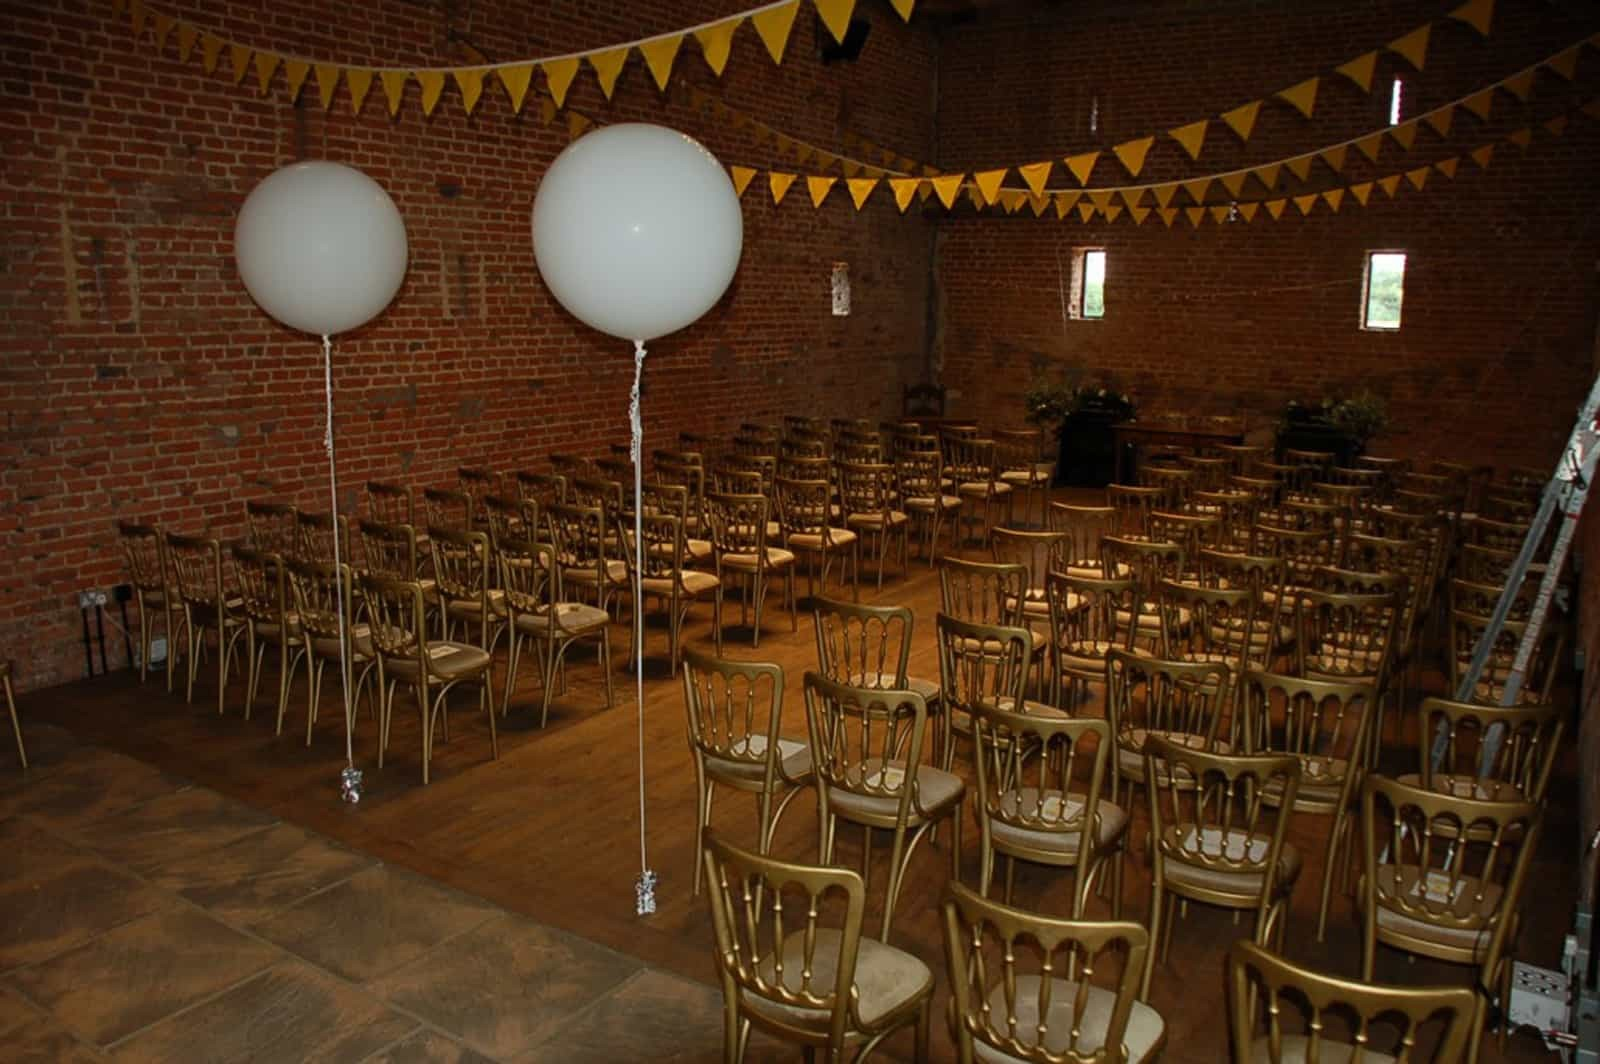 Balloons and bunting wedding ceremony